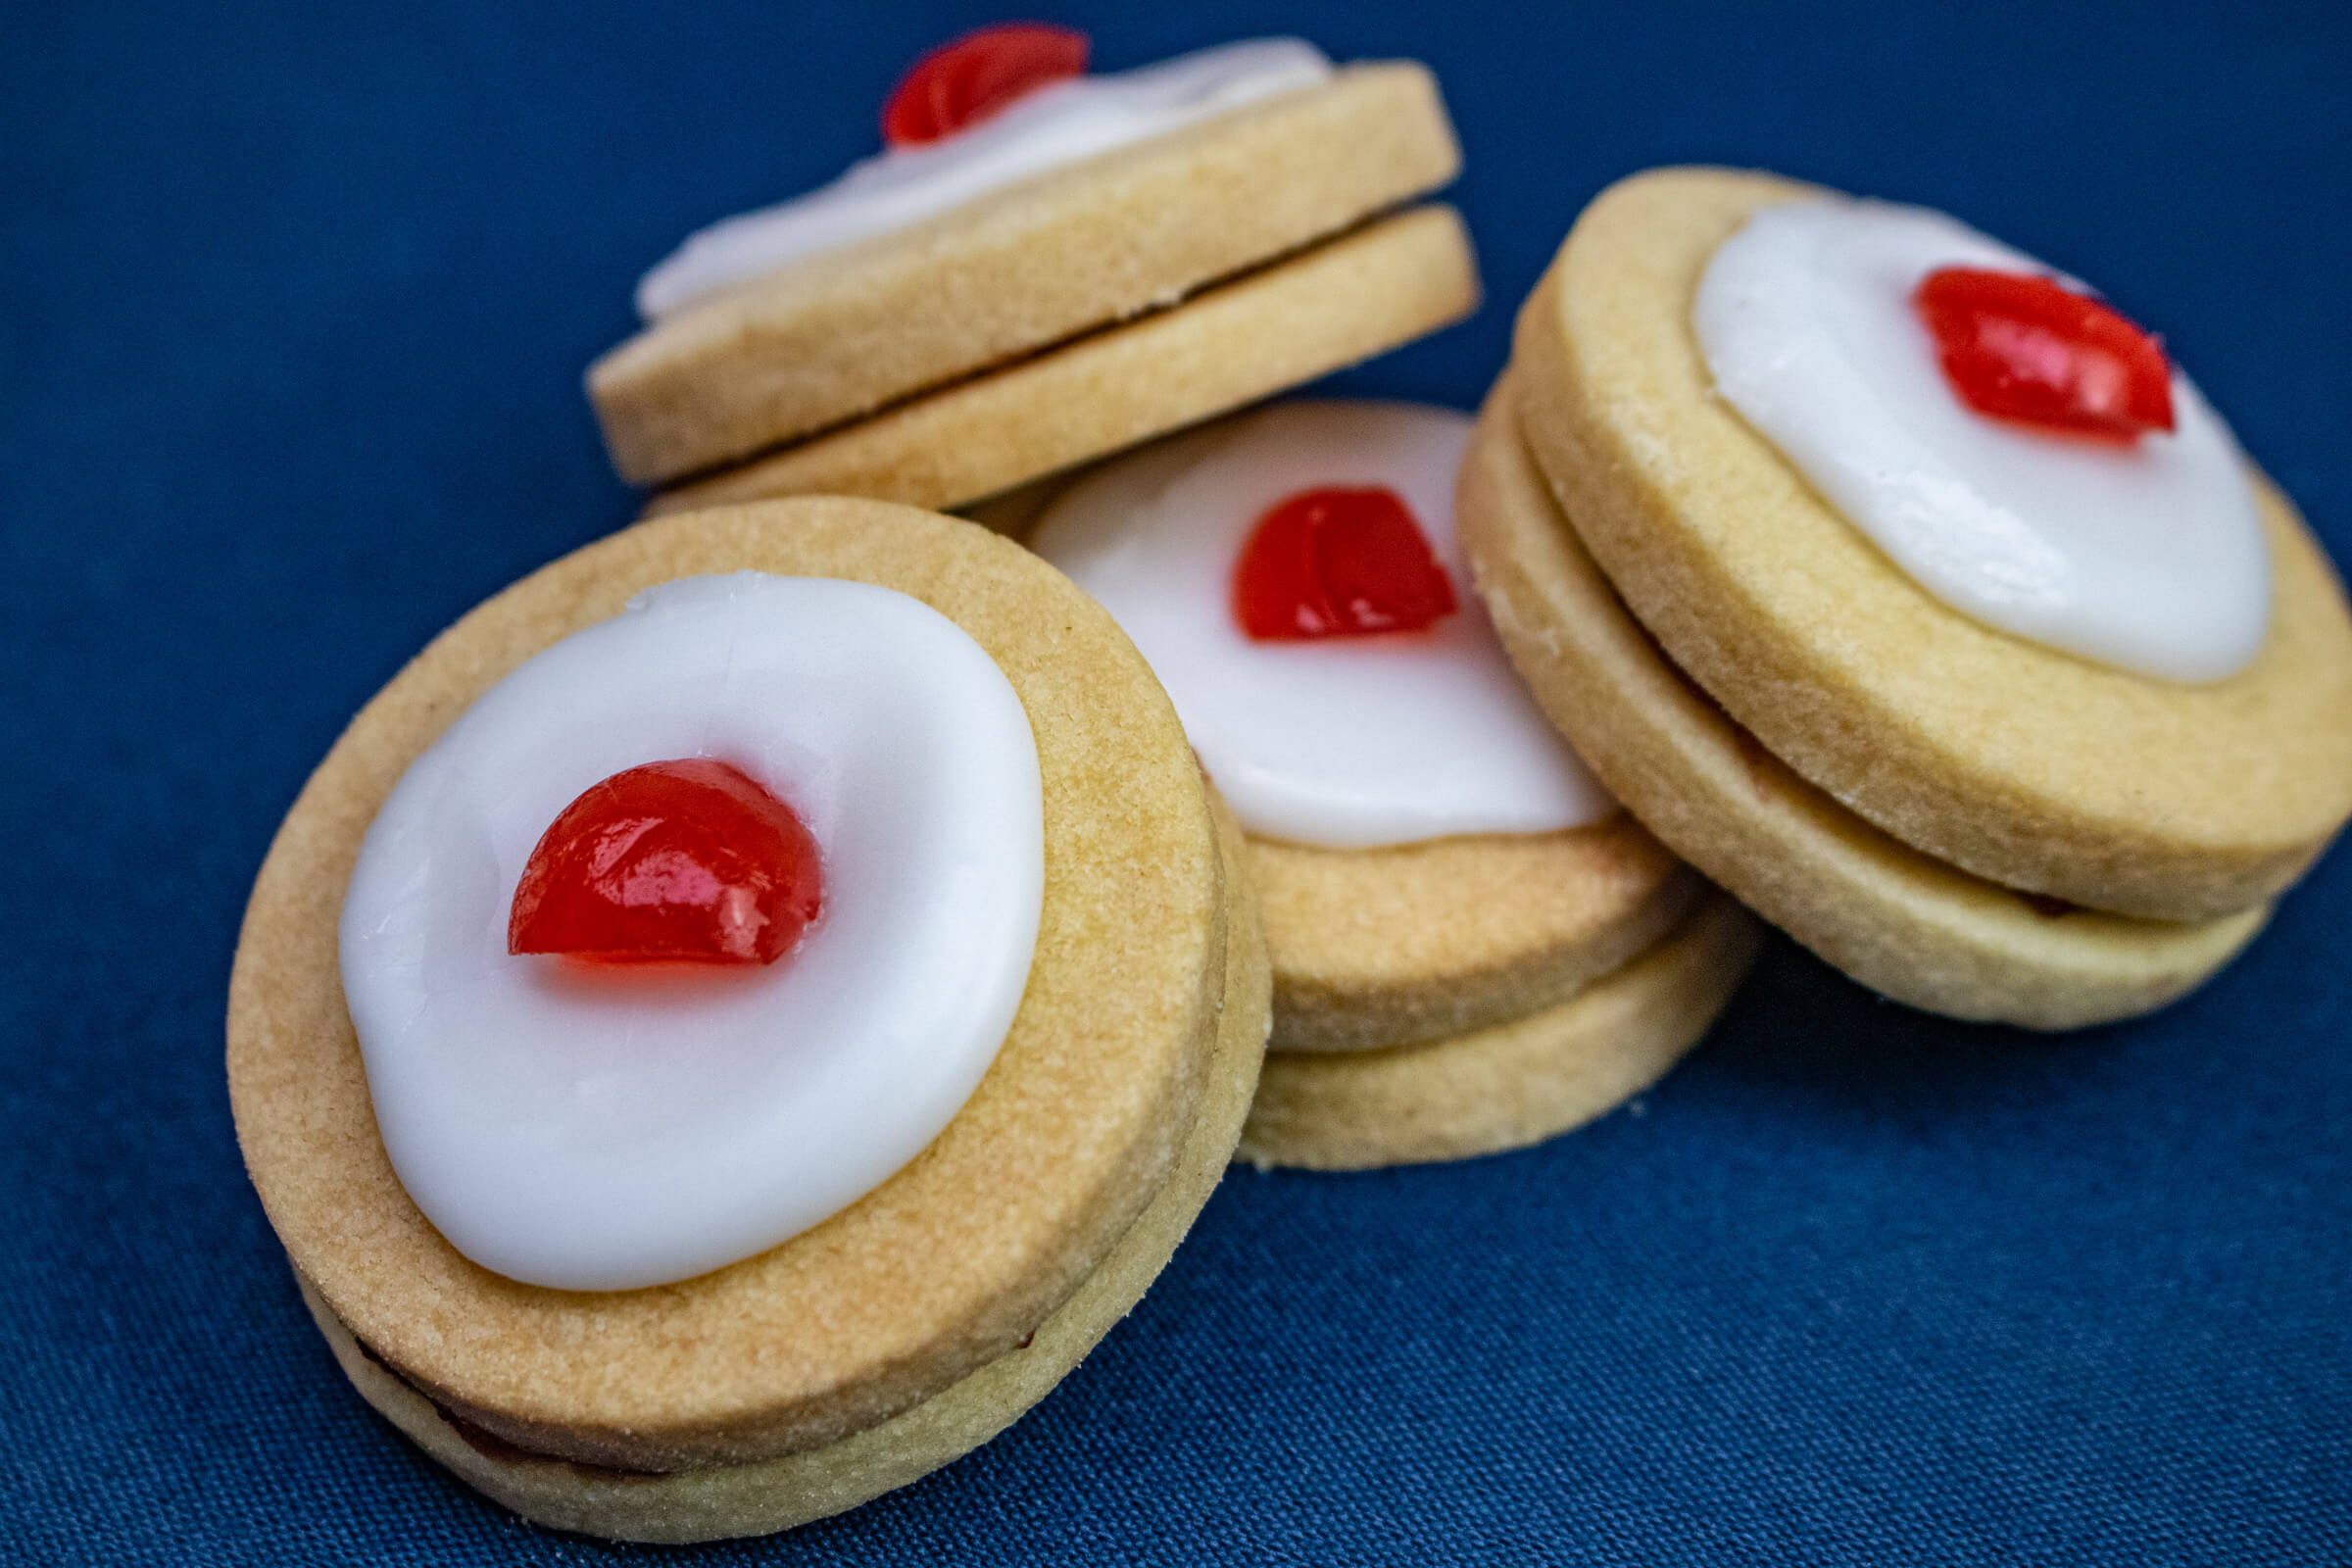 Fresh German biscuits from Olive Tree Bakes